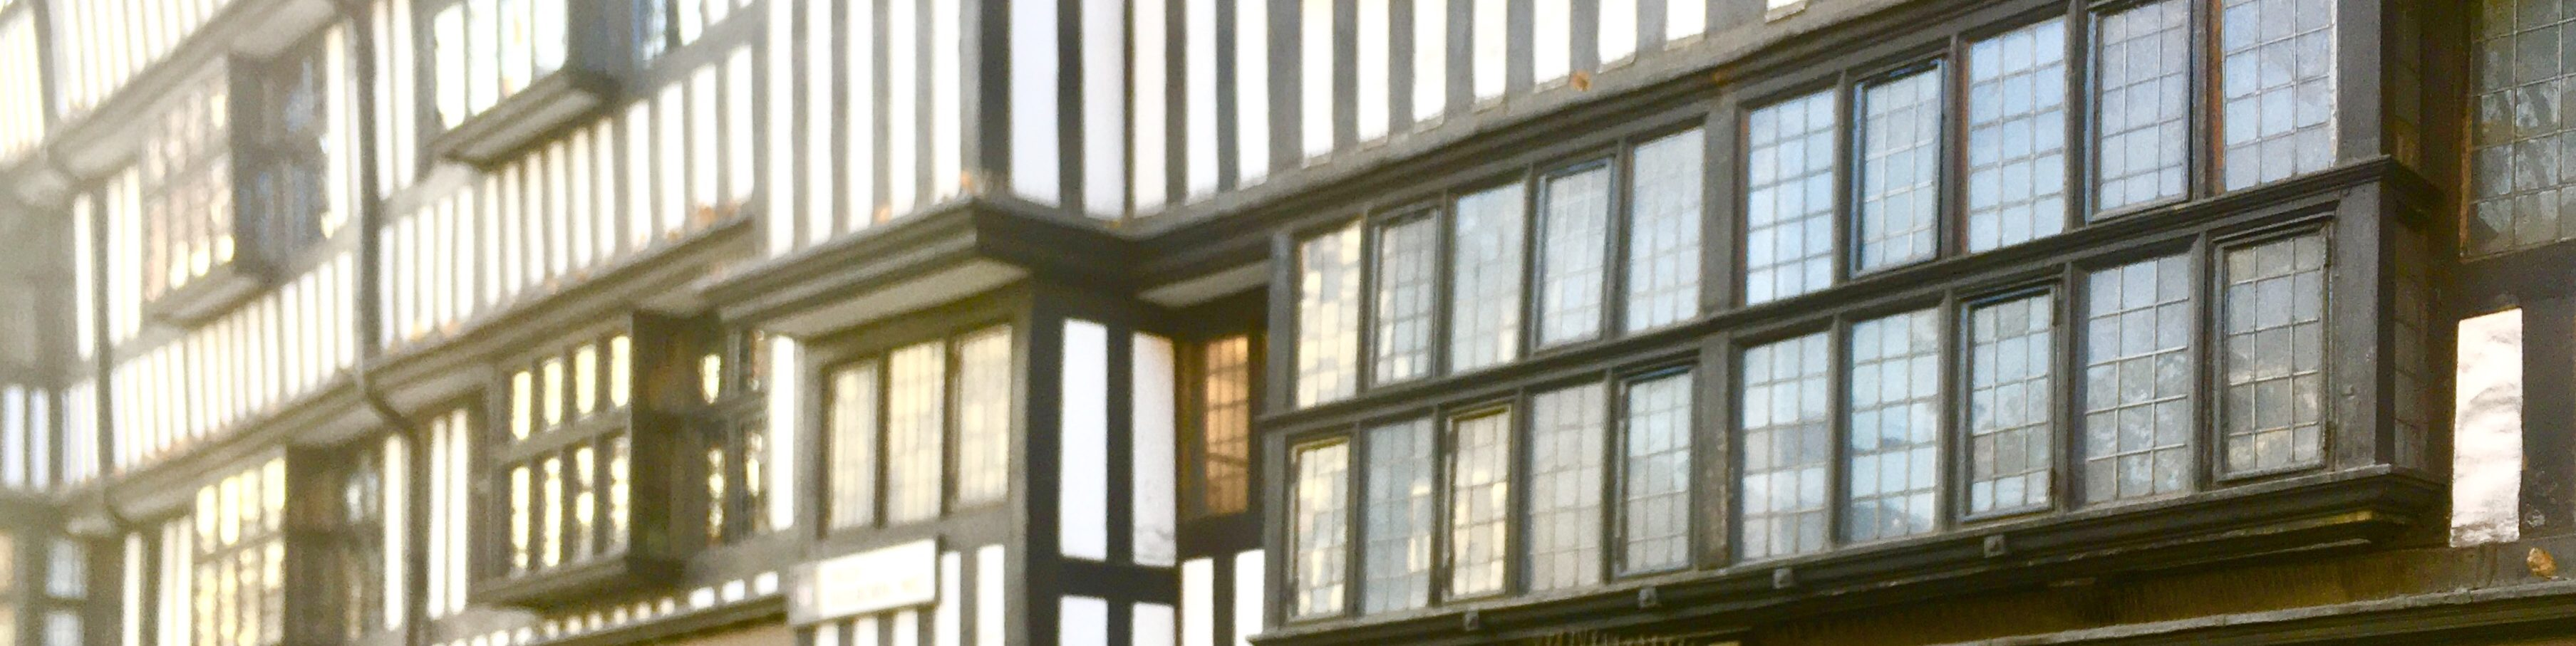 Psychotherapy @ Staple Inn